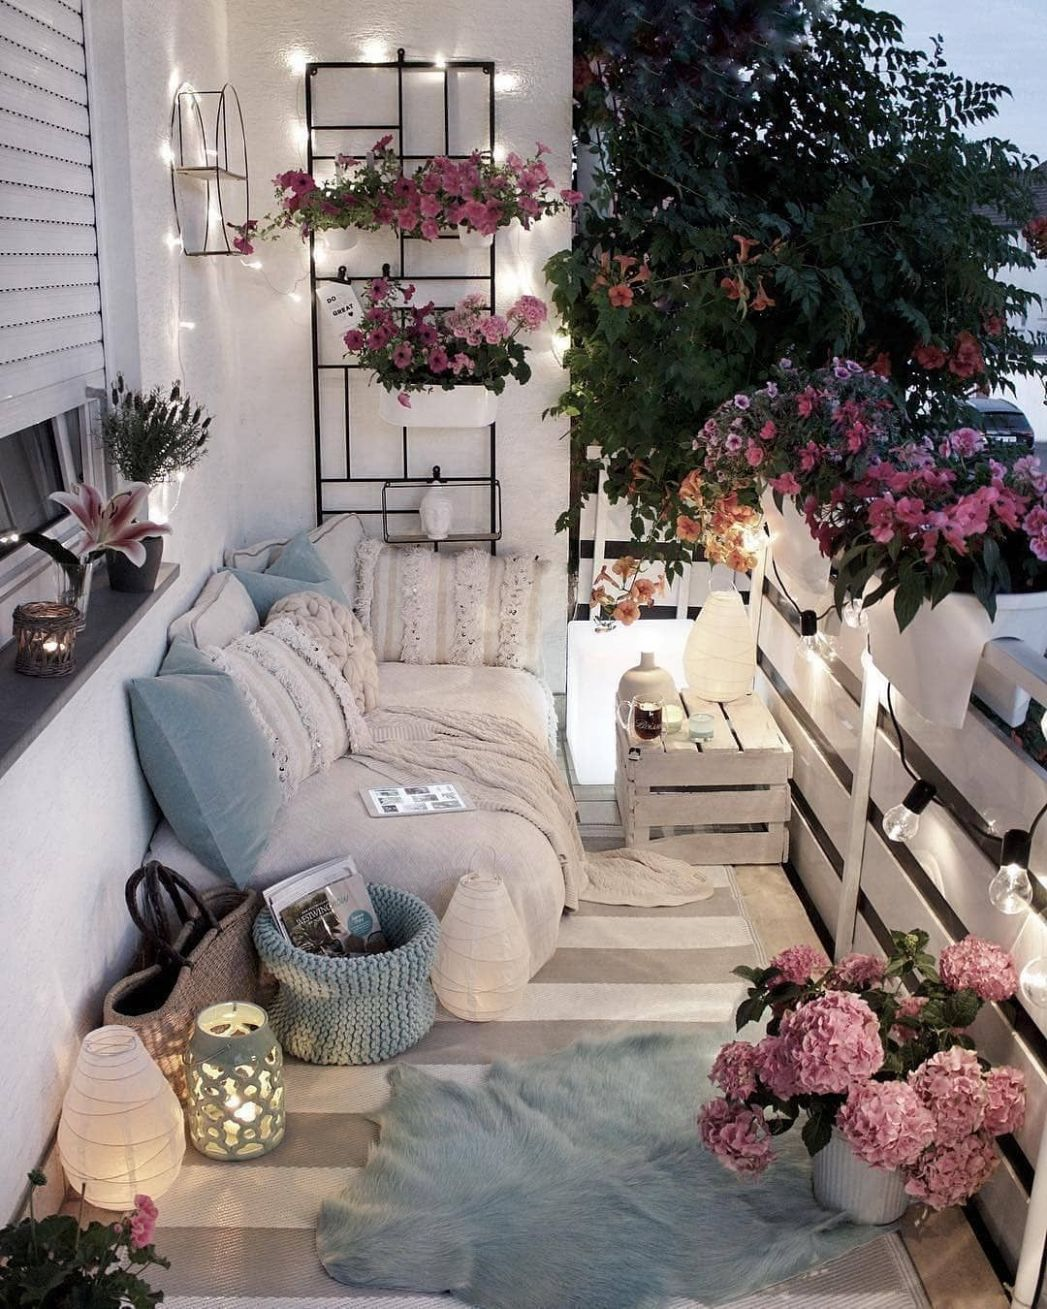 The Best Decorated Small Outdoor Balconies on Pinterest in 10 ..